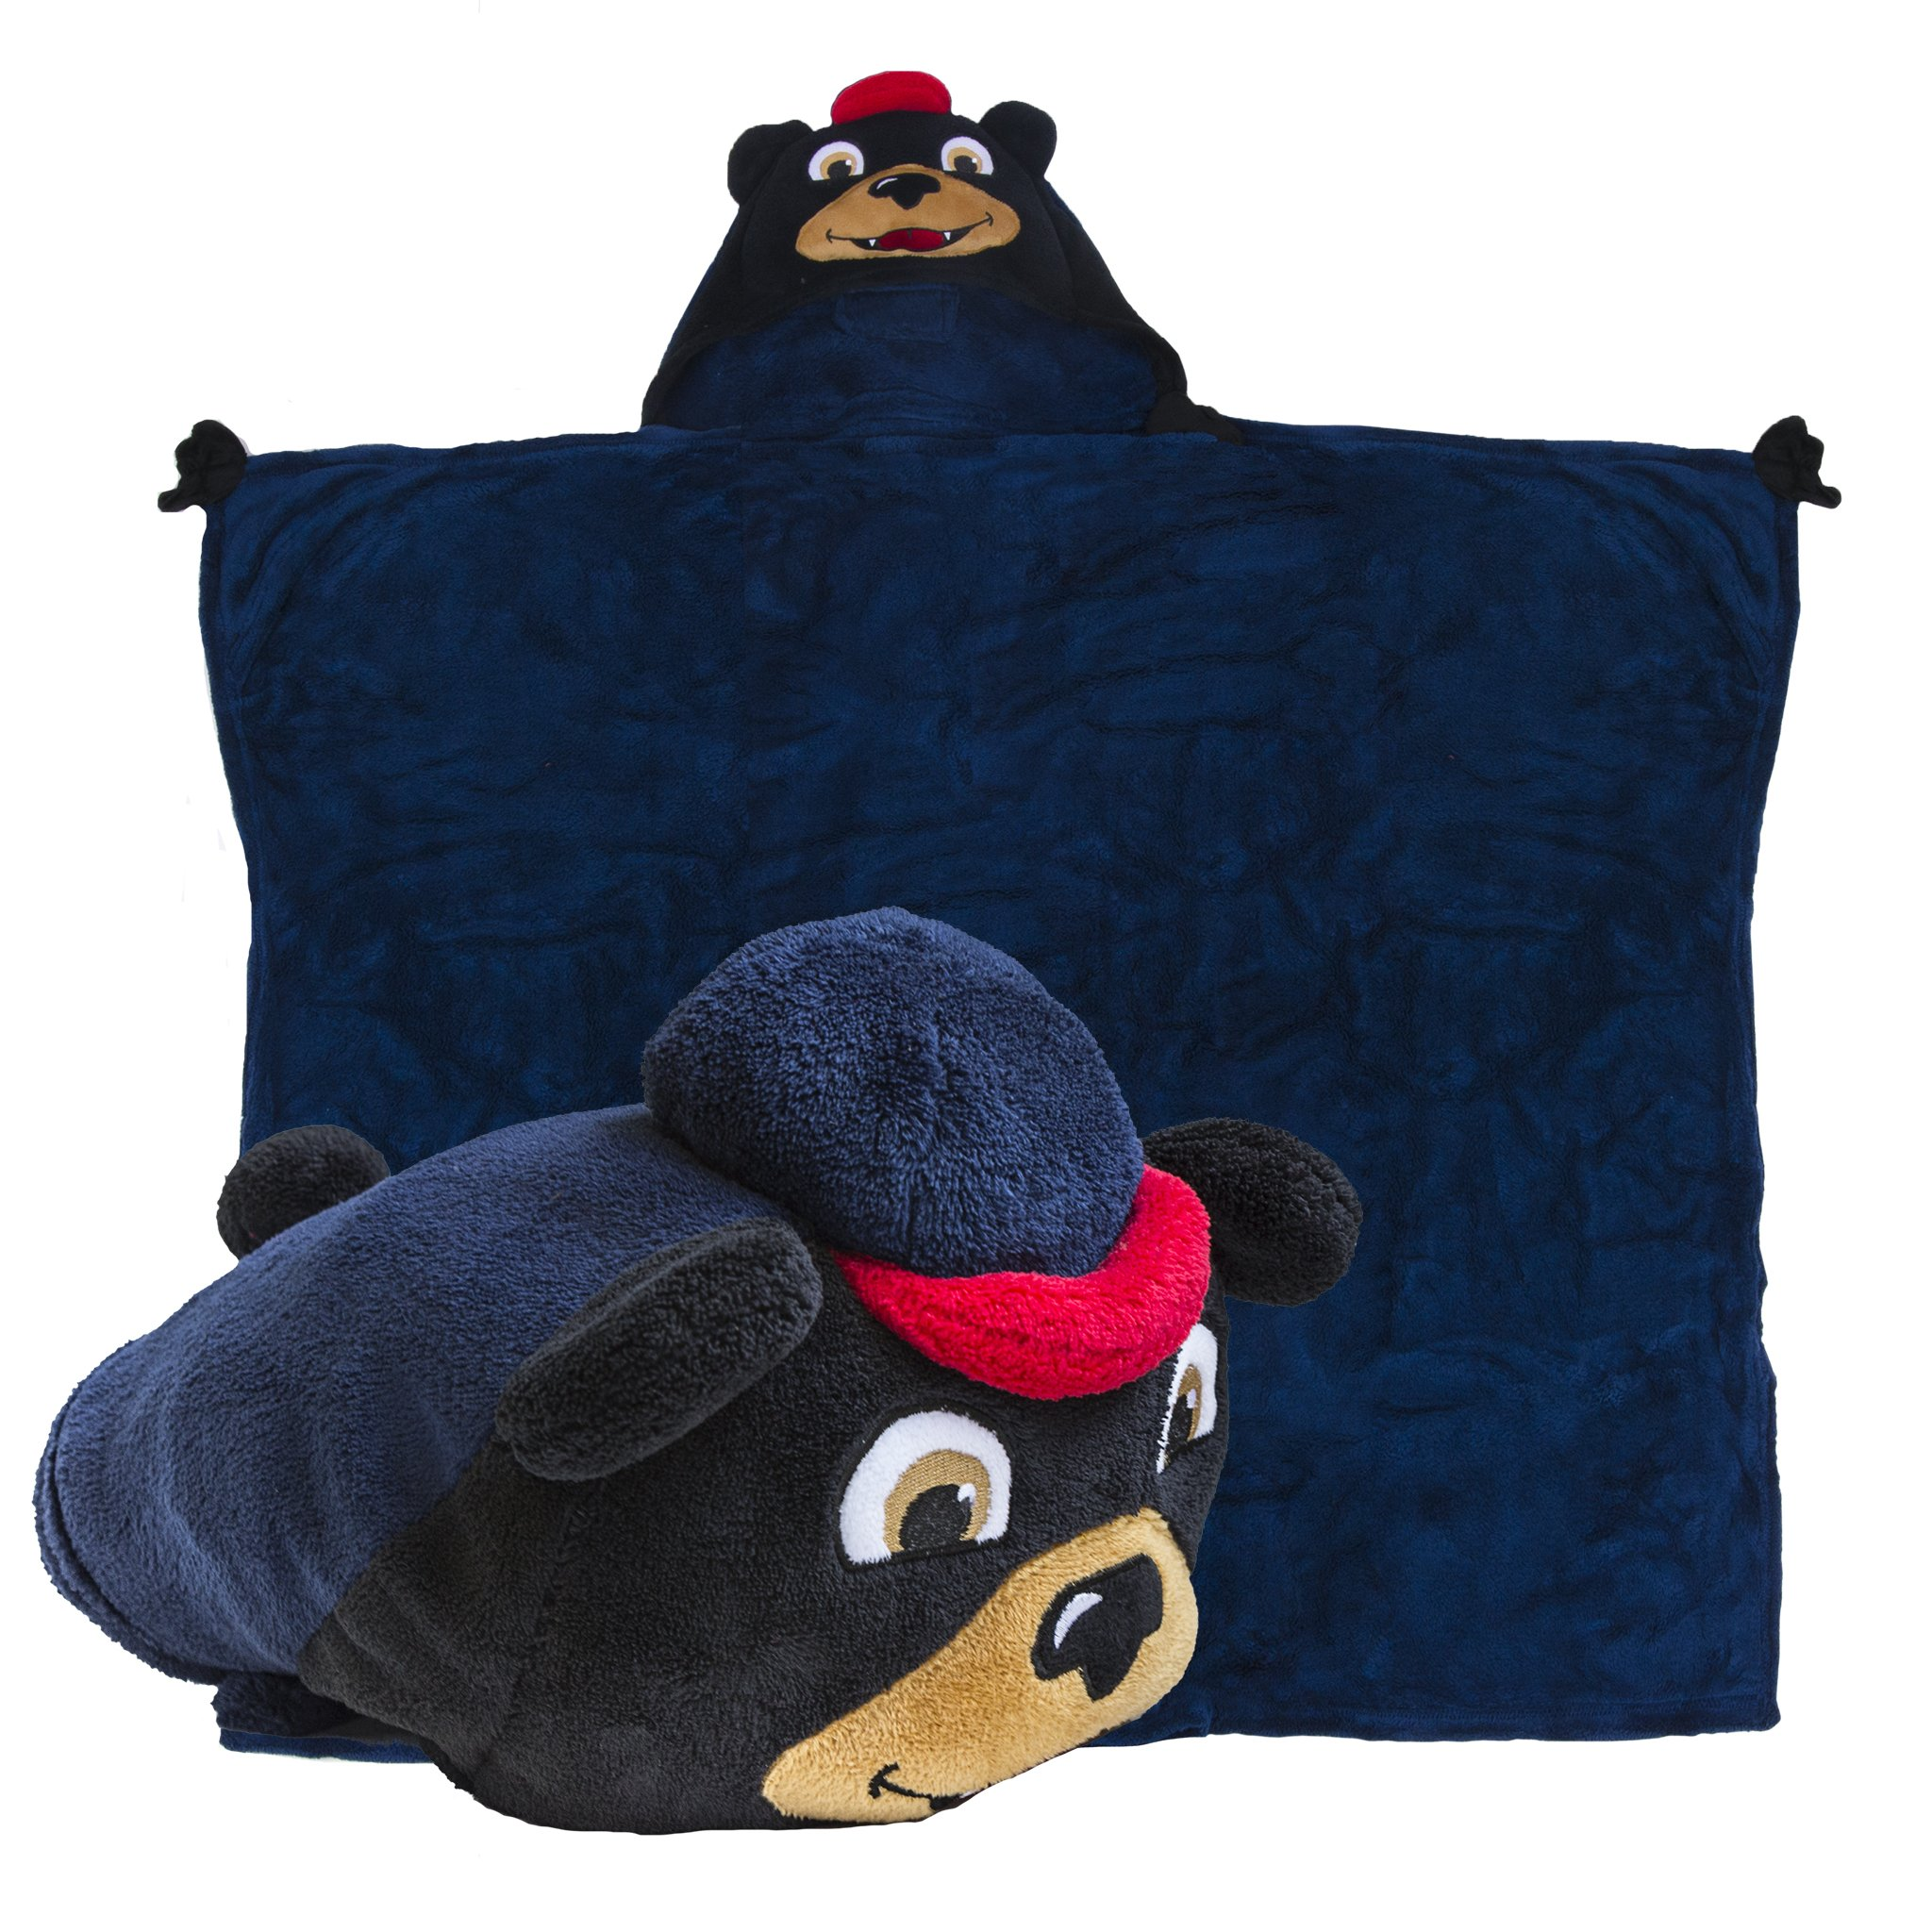 Comfy Critters Stuffed Animal Blanket – College Mascot, University of Mississippi 'Rebel the Black Bear' – Kids huggable pillow and blanket perfect for the big game, tailgating, and much more